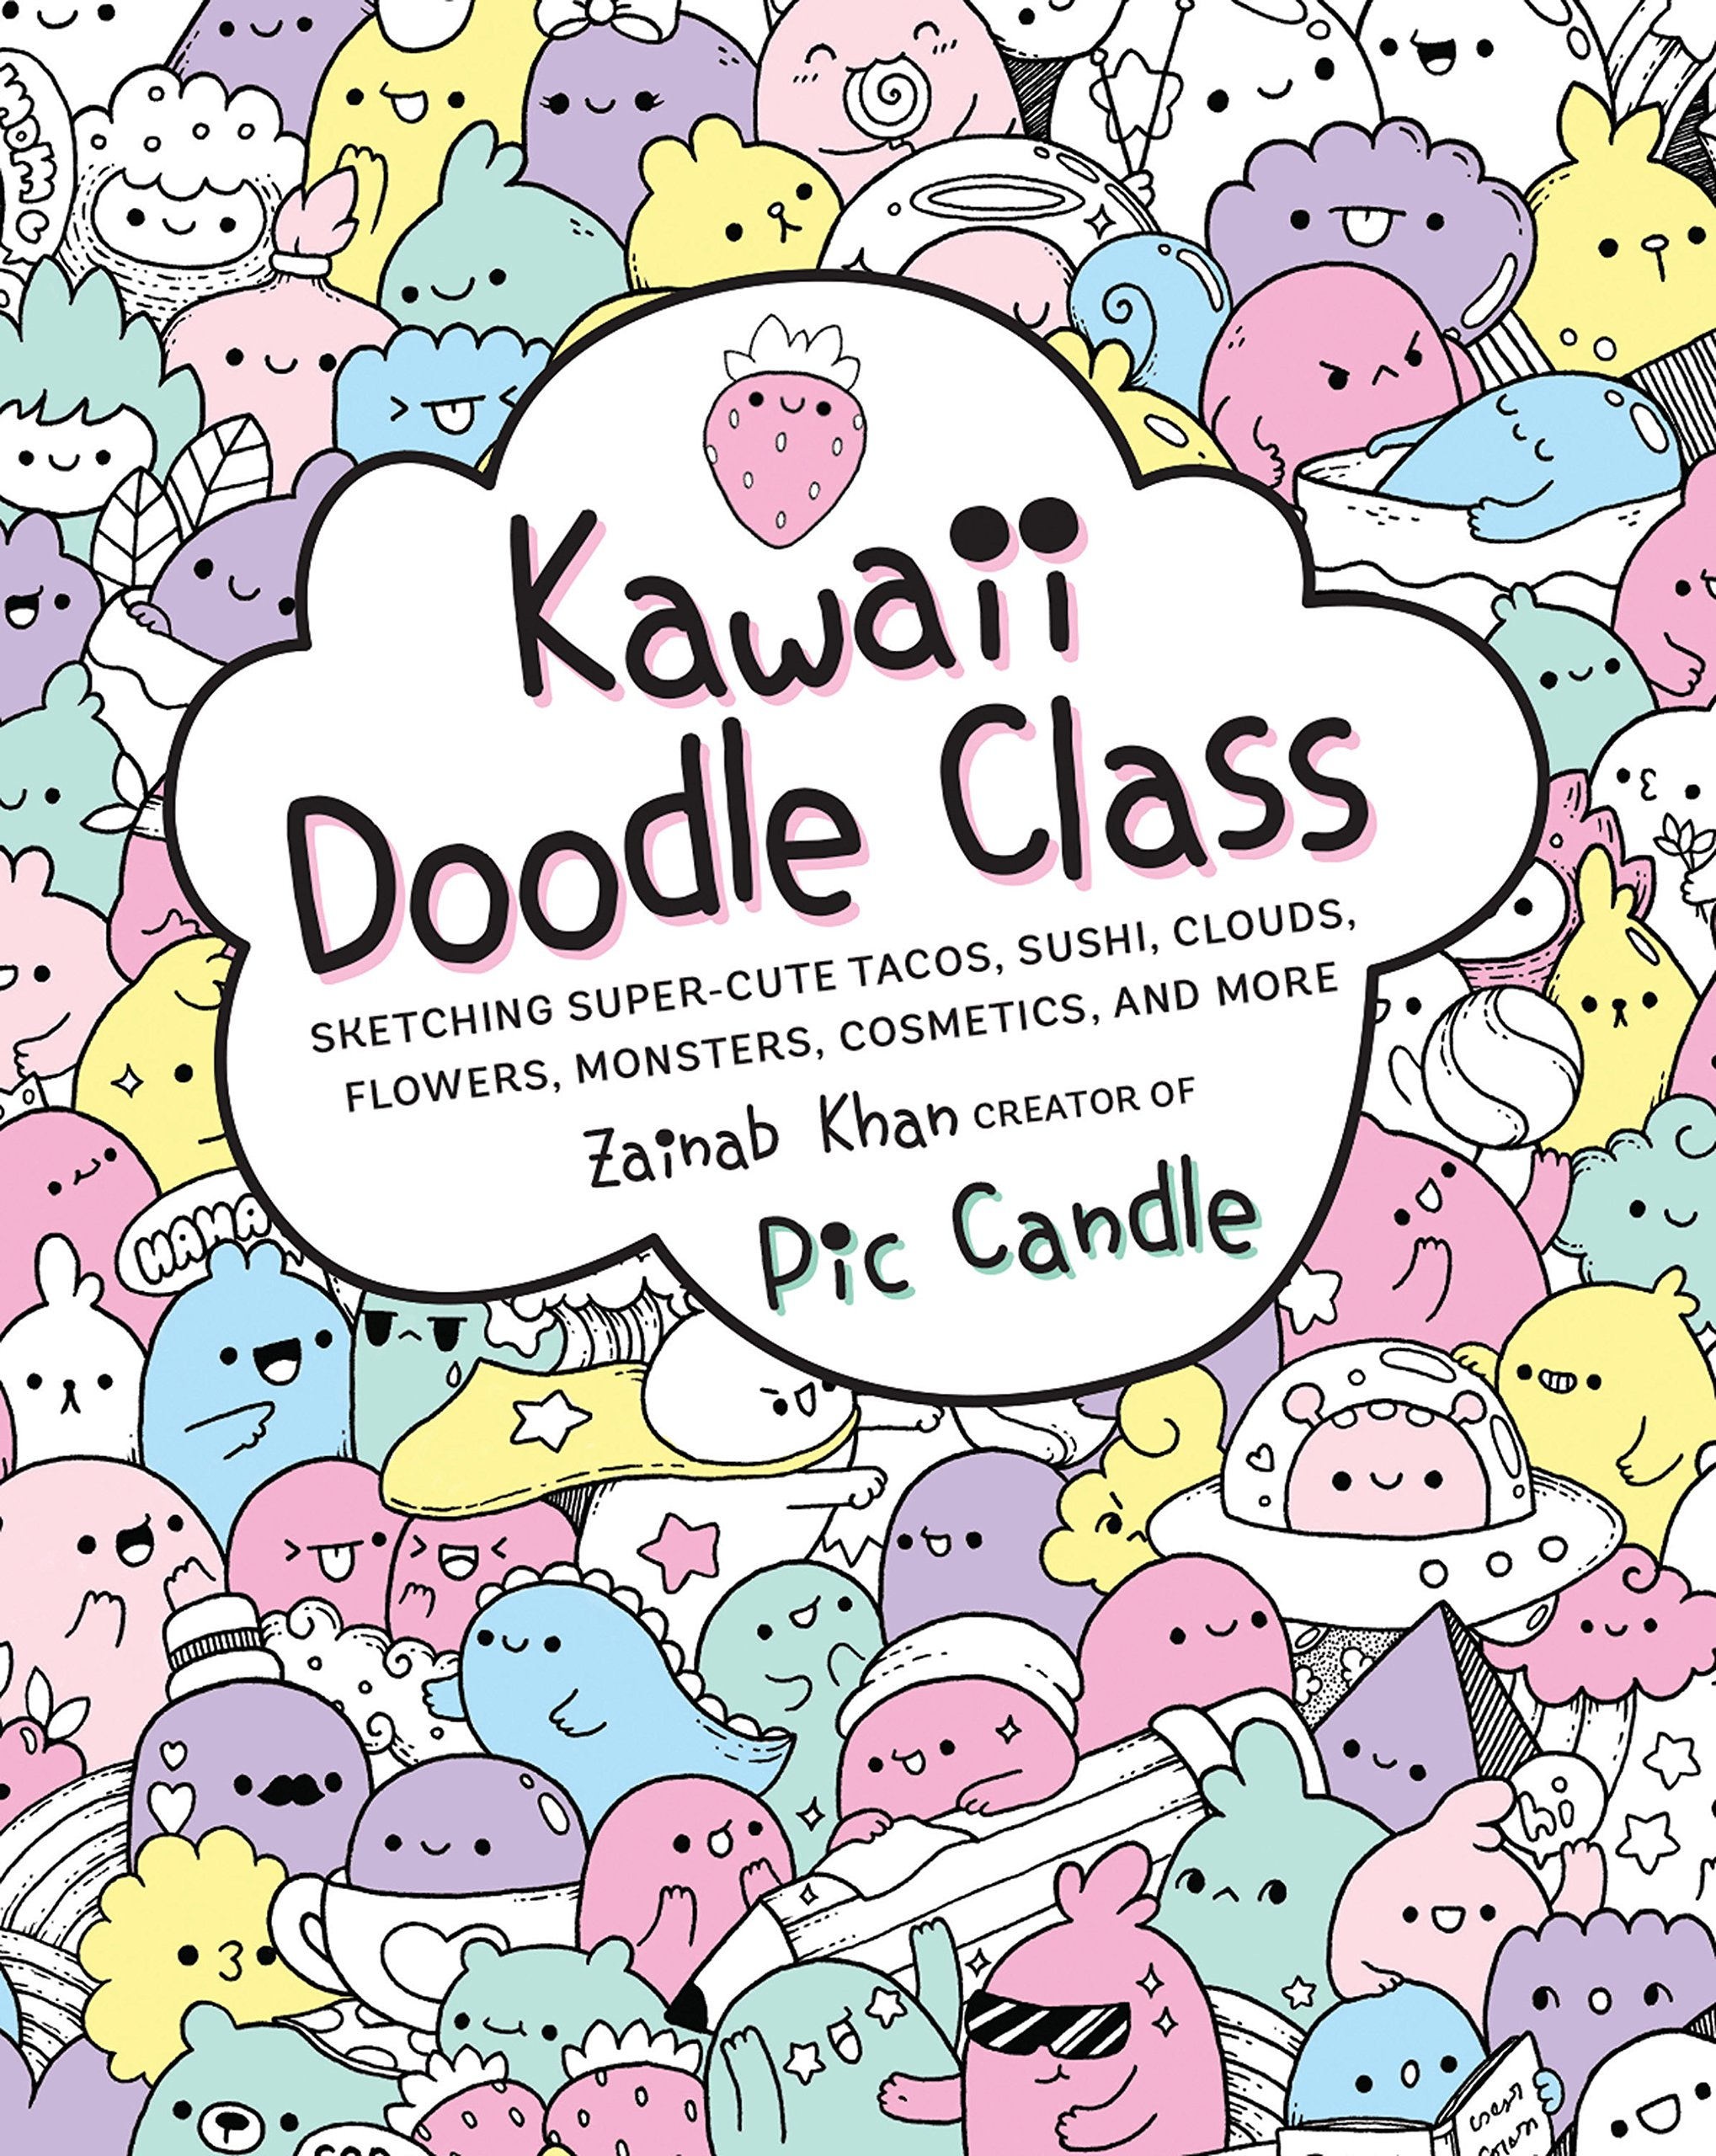 Kawaii Doodle Class: Sketching Super-Cute Tacos, Sushi